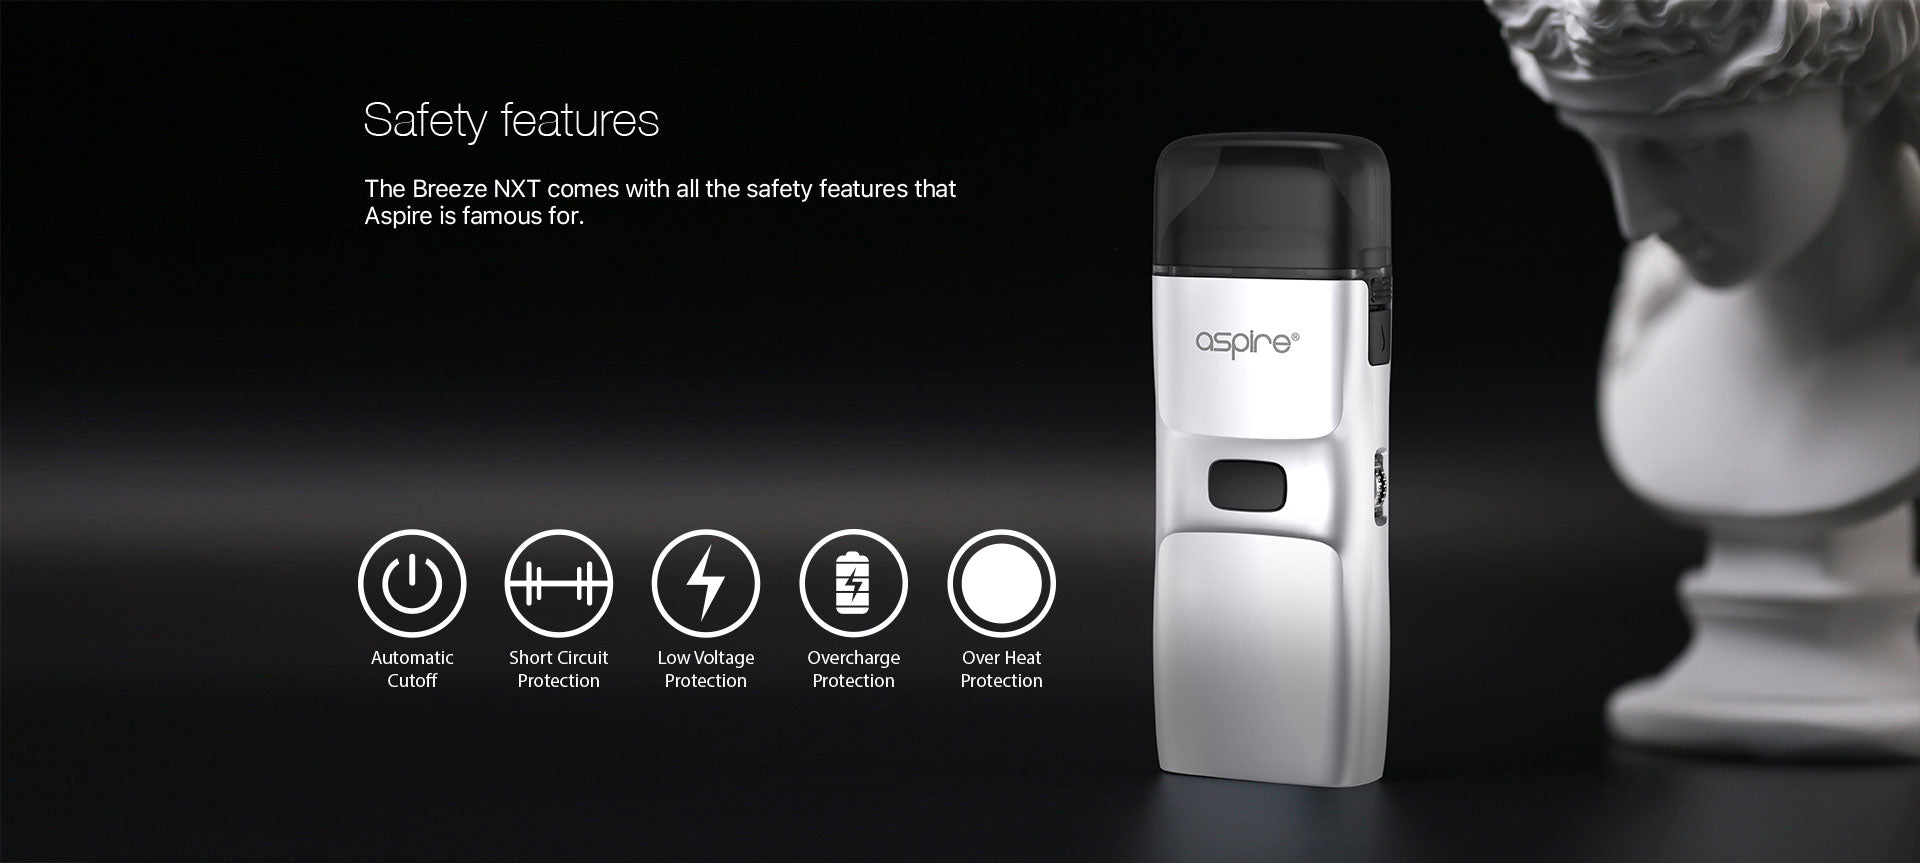 Aspire-Breeze-NXT-safety-features